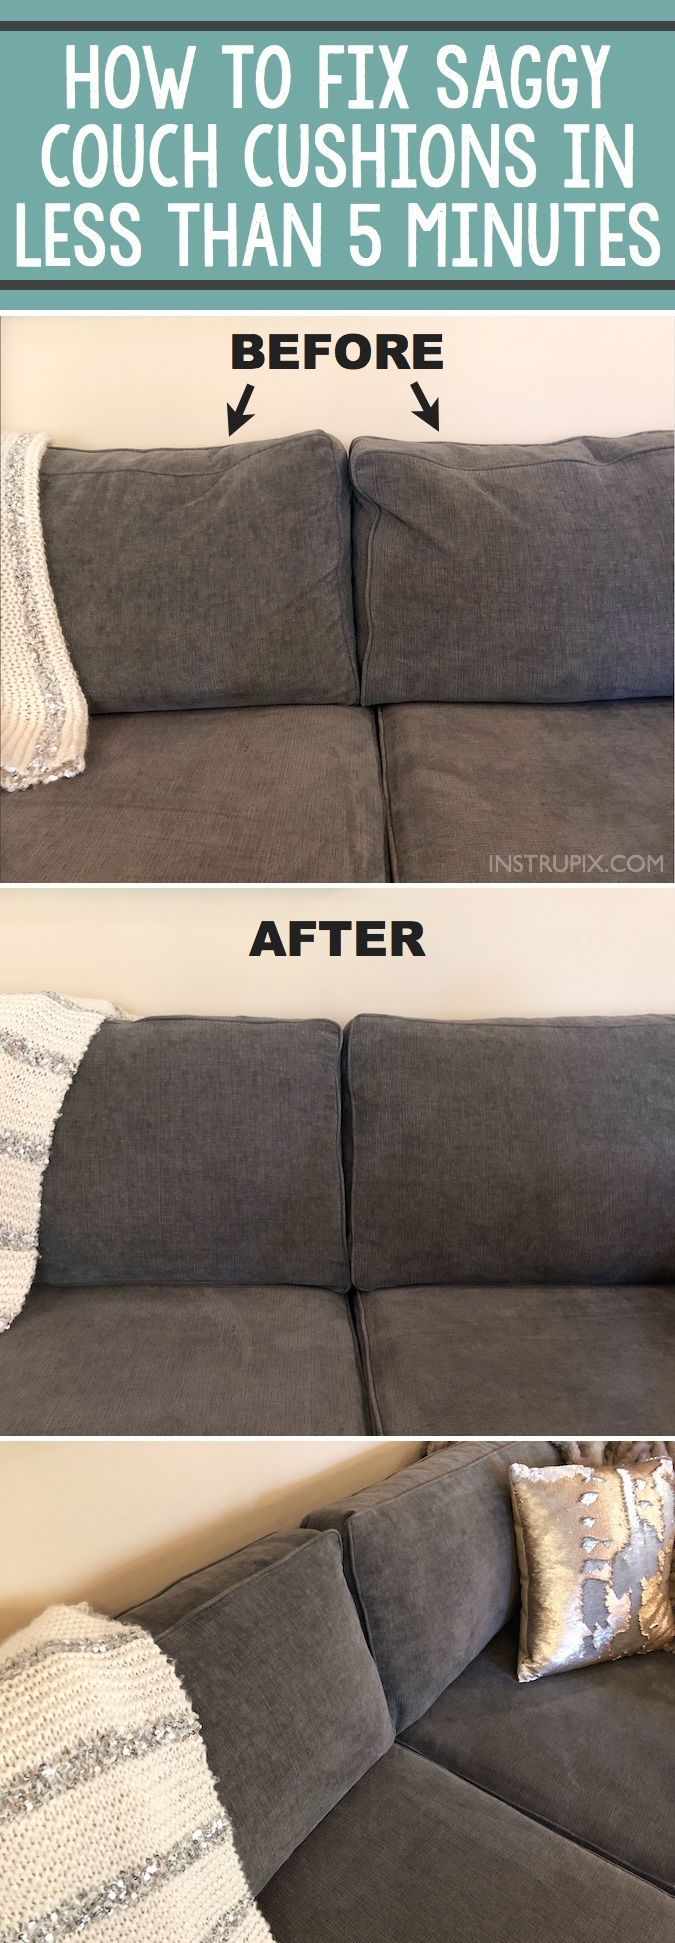 Good Home Tip    How To Easily Fix Sagging Couch Cushions In Less Than 5  Minutes! This DIY Trick Will Make Your Couch Pillows Look Brand New! A Life  Hacu2026